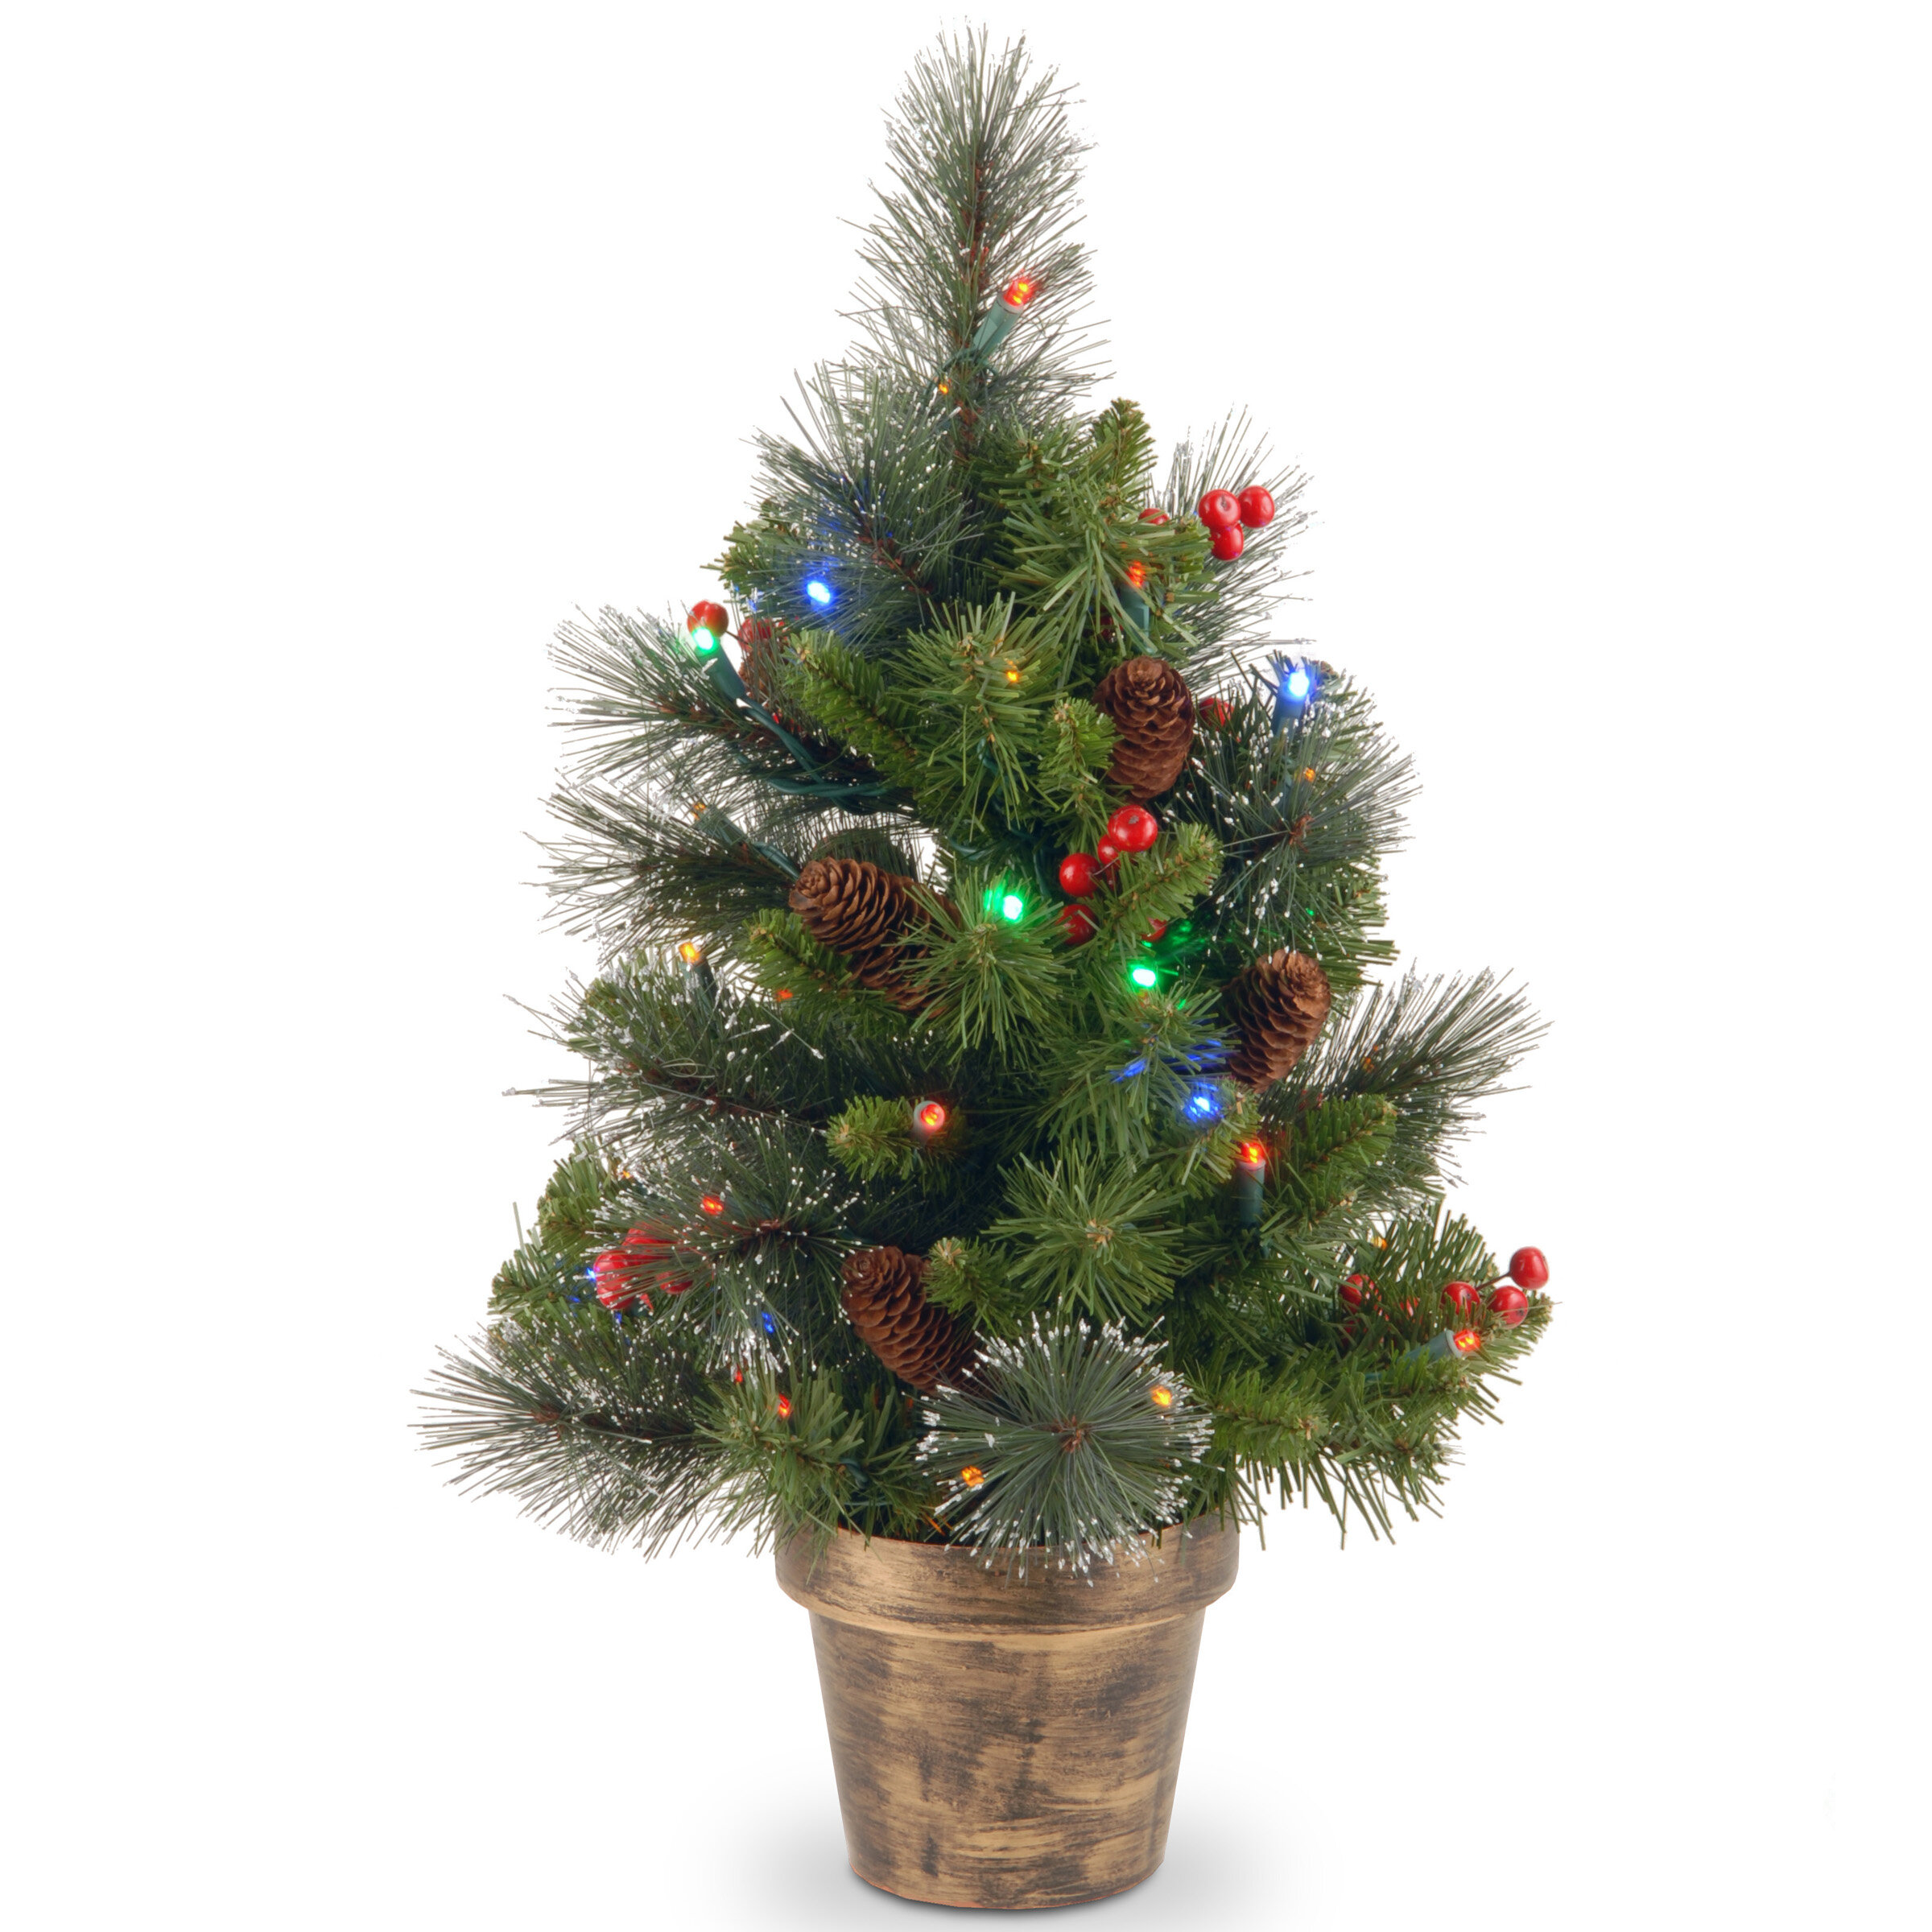 Buy Small Christmas Tree Cheaper Than Retail Price Buy Clothing Accessories And Lifestyle Products For Women Men